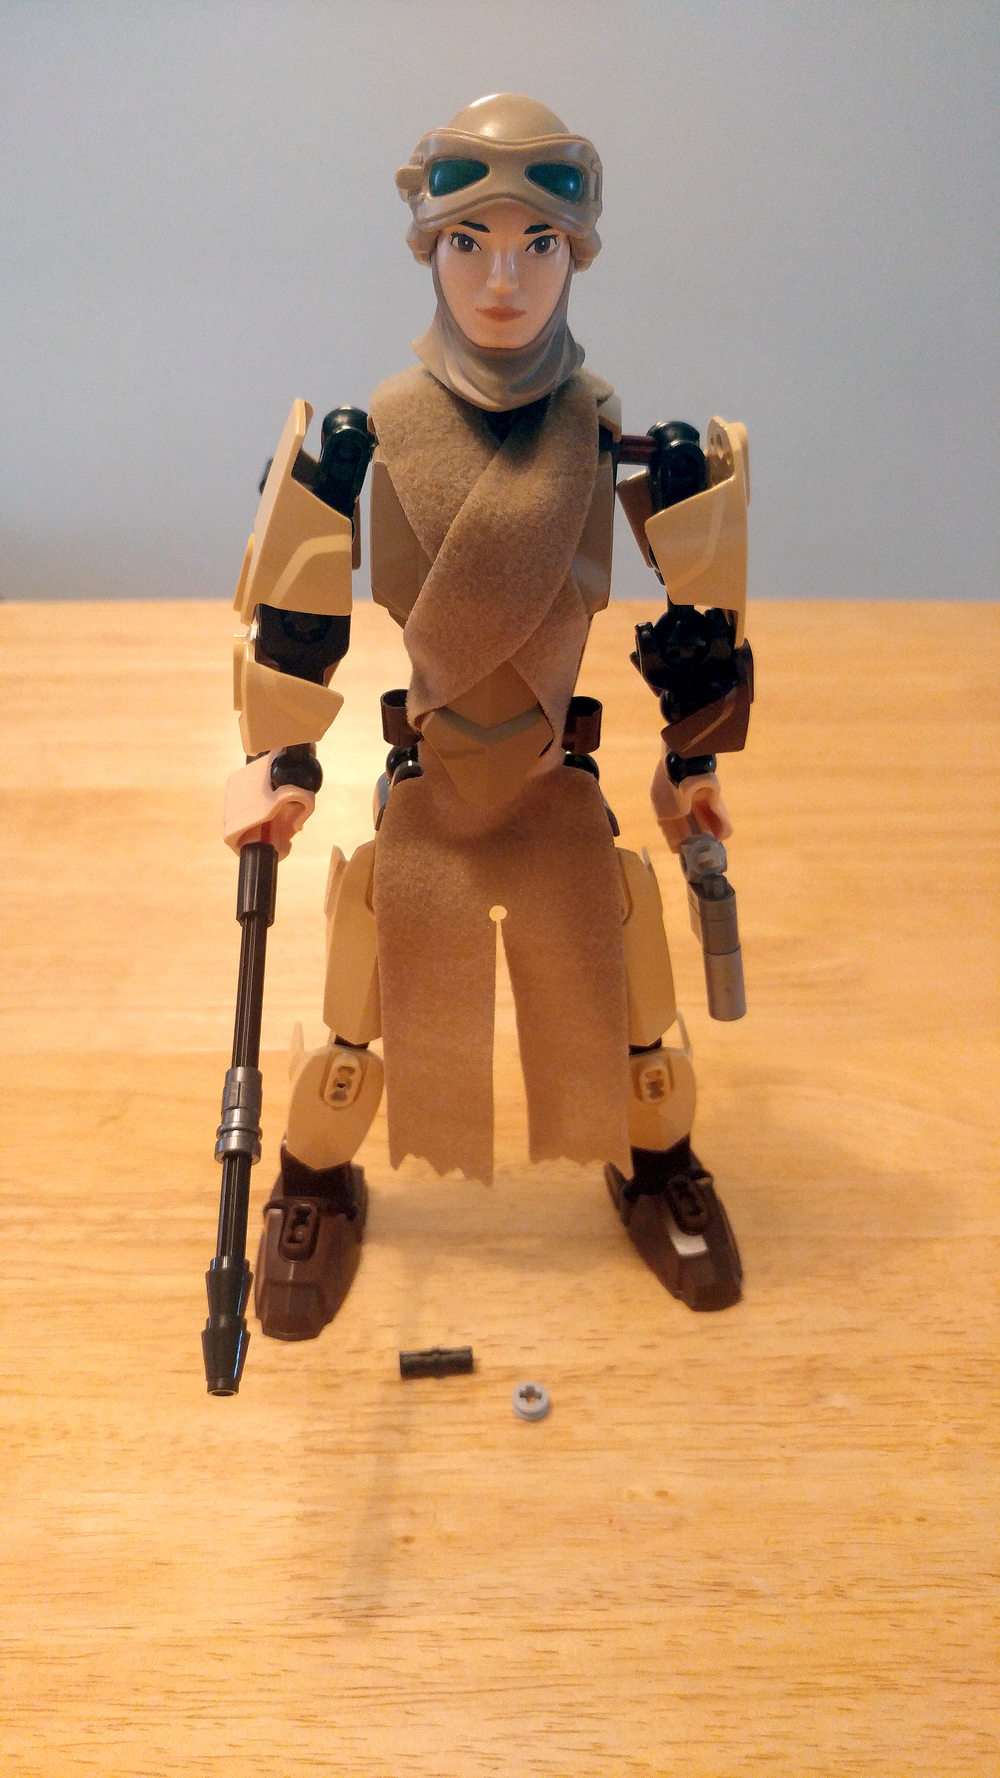 Star Wars LEGO Rey Buildable Figures Complete Constructed Close Up 3